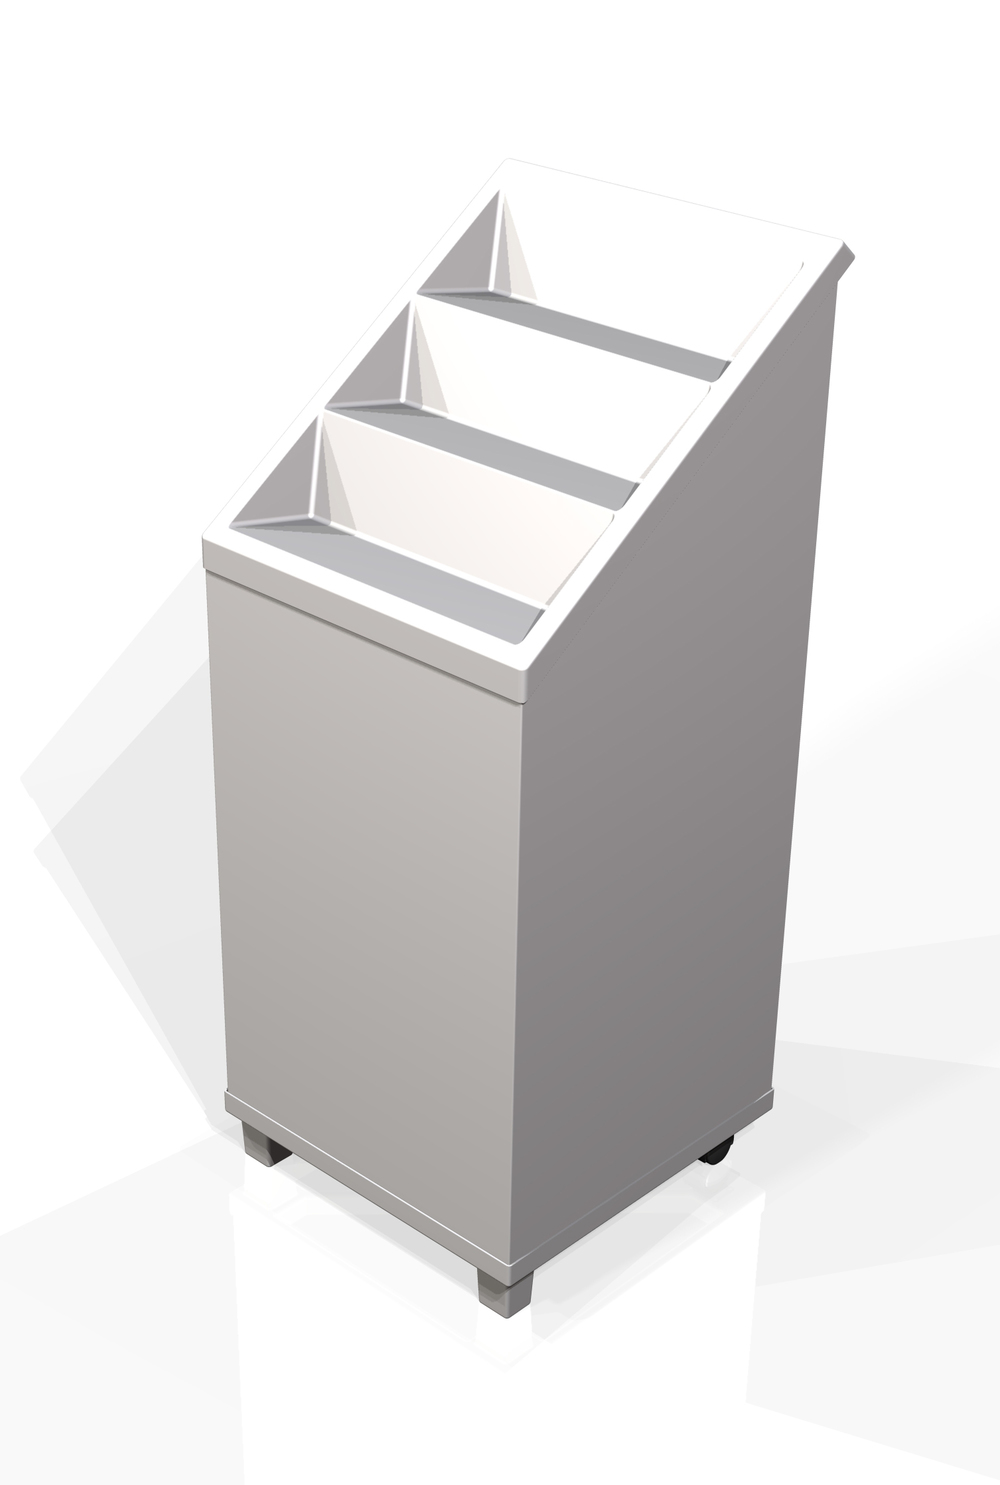 Generic stepped dumpbin